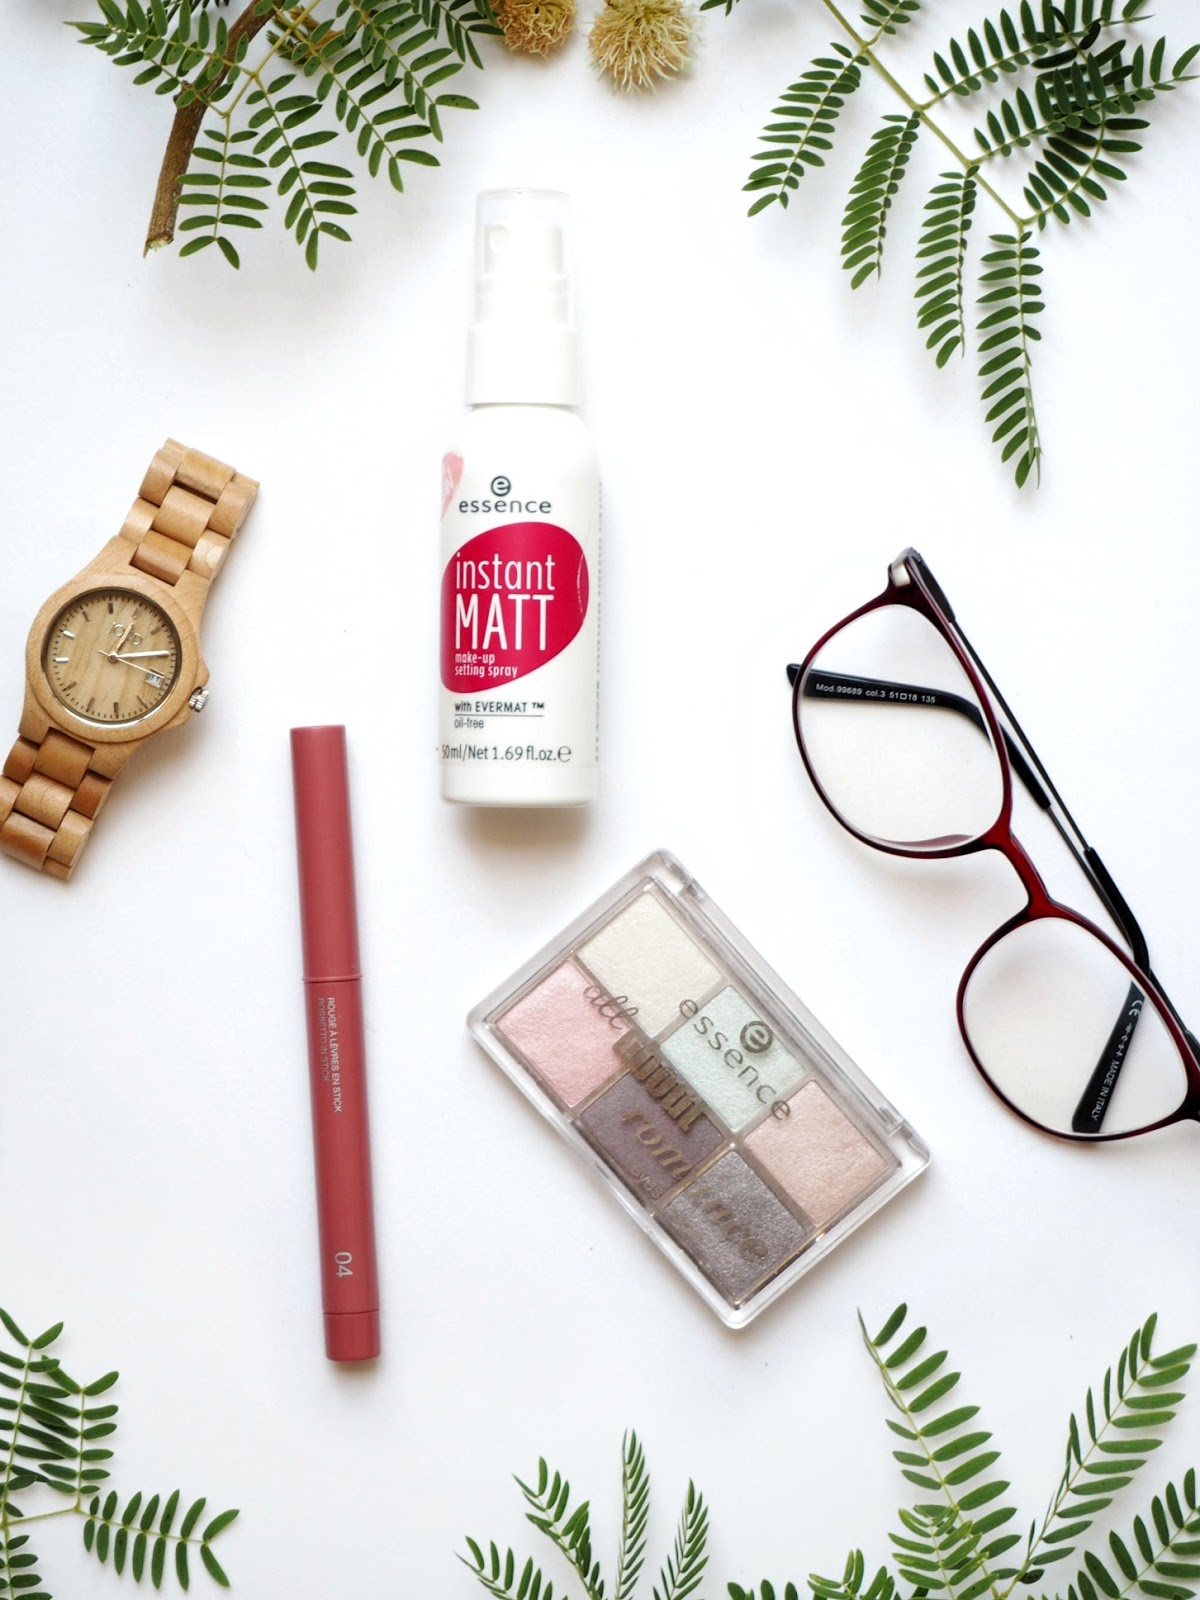 april favourites, may favourites, makeup, wood watch, setting spray, eyeglasses